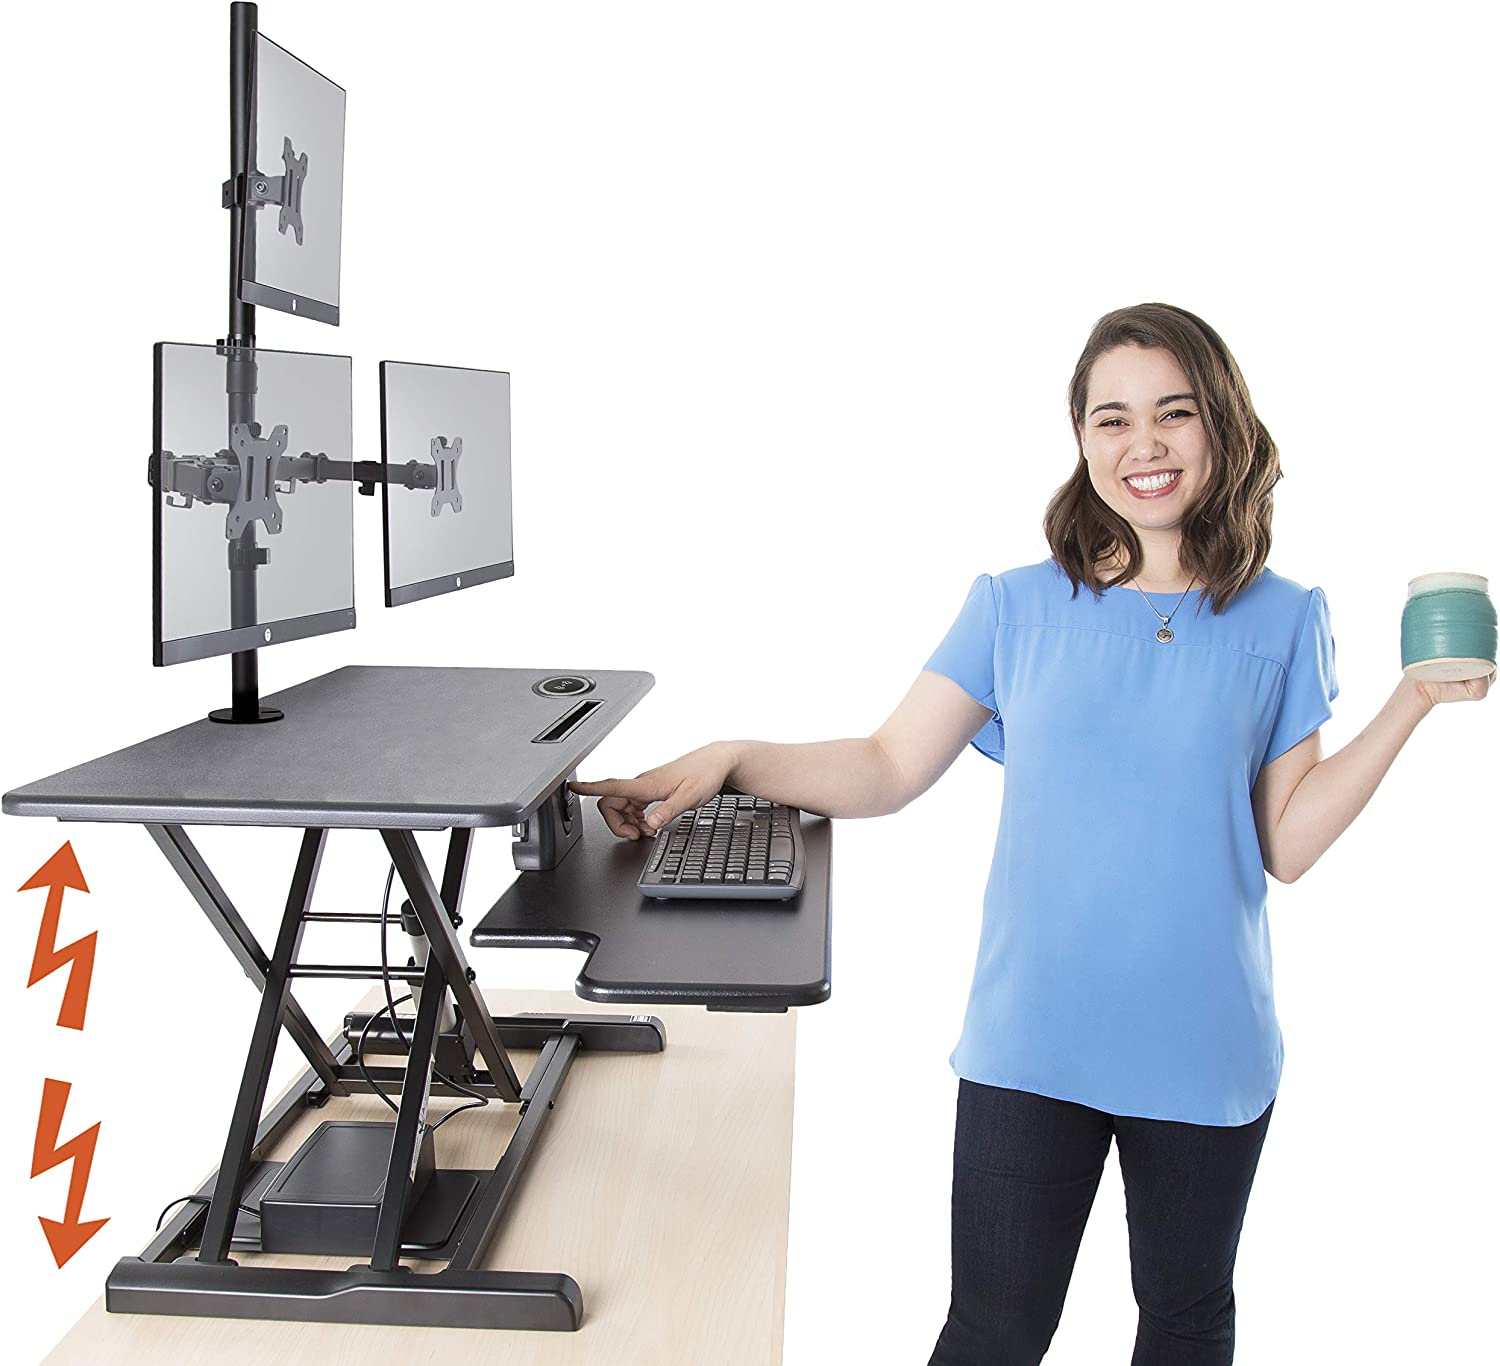 Flexpro Hero Power Standing Desk with Attachable Monitor Stand - Monitor Mount Desk for 3 Monitors - Includes Integrated Phone Charger/Tablet Holder (37.5